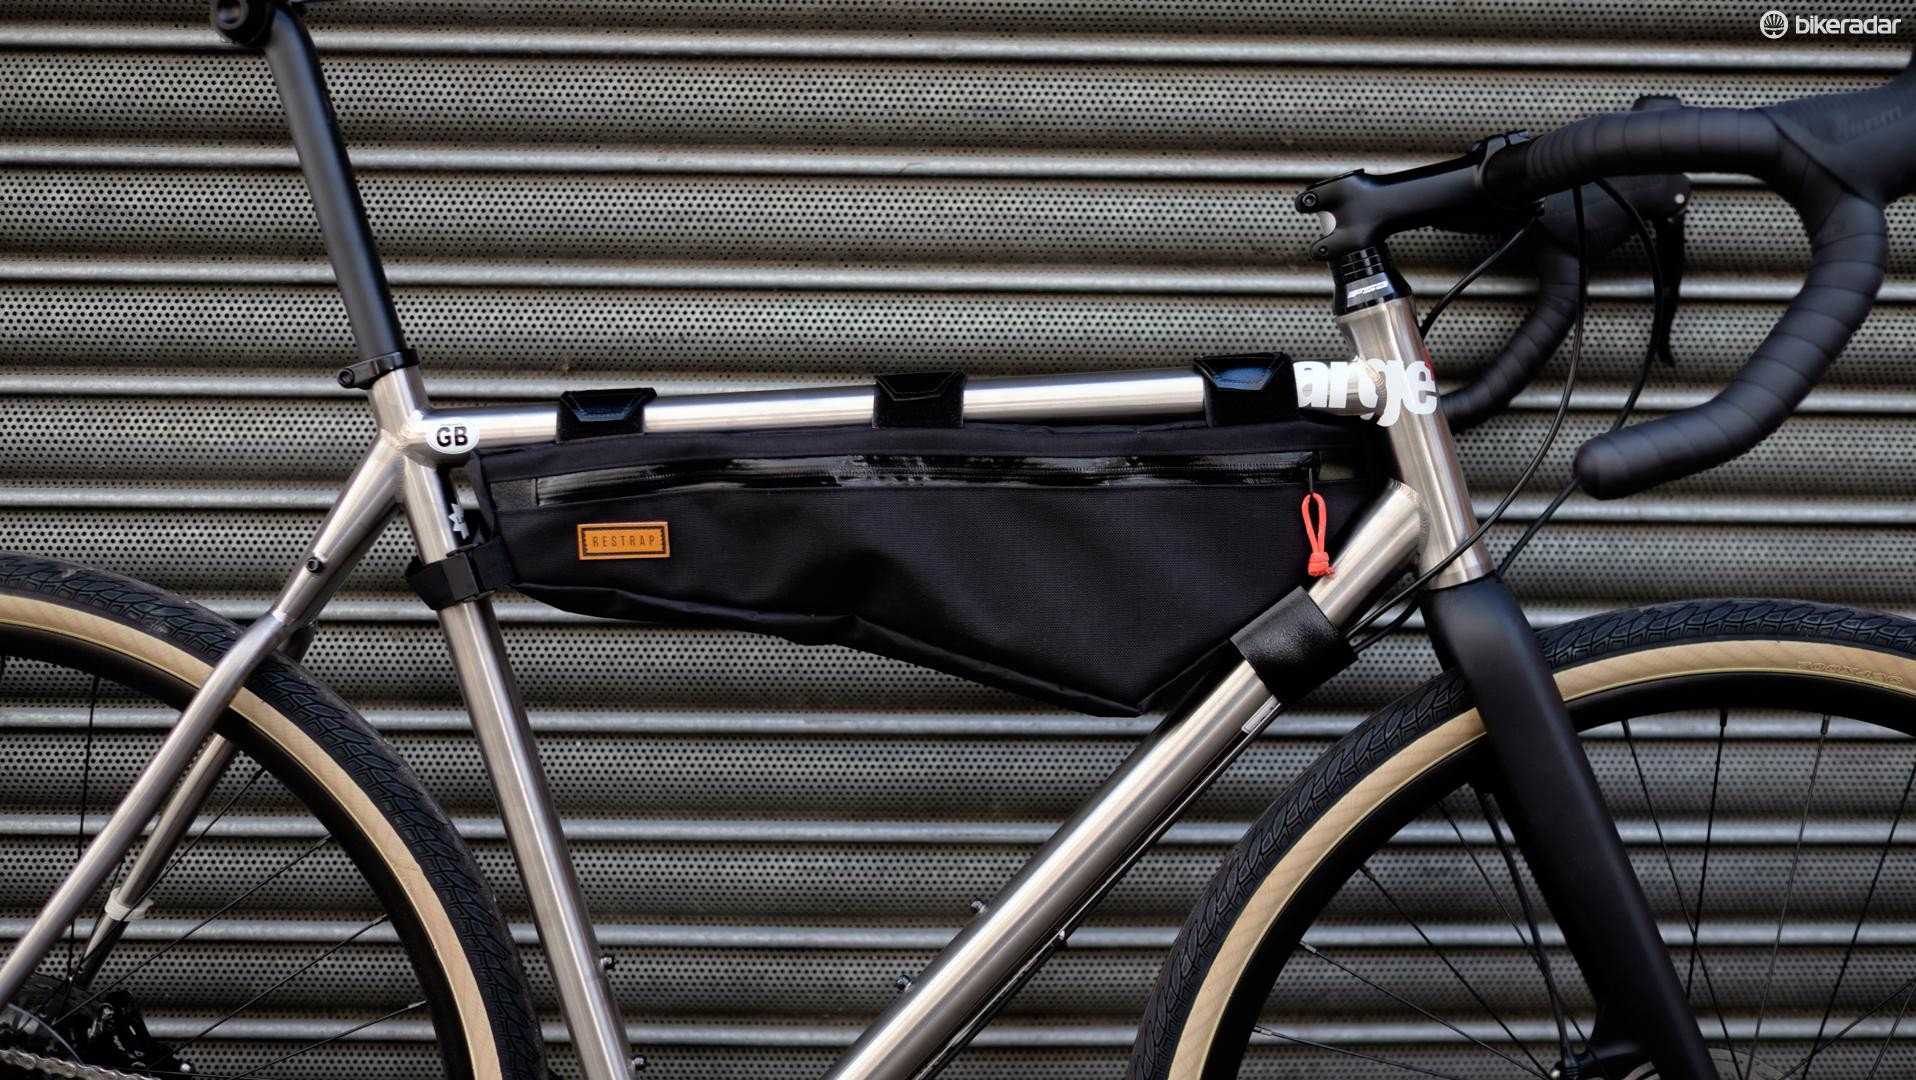 The handmade #carryeverything frame bag from the ever-trendy Restrap based out of Yorkshire